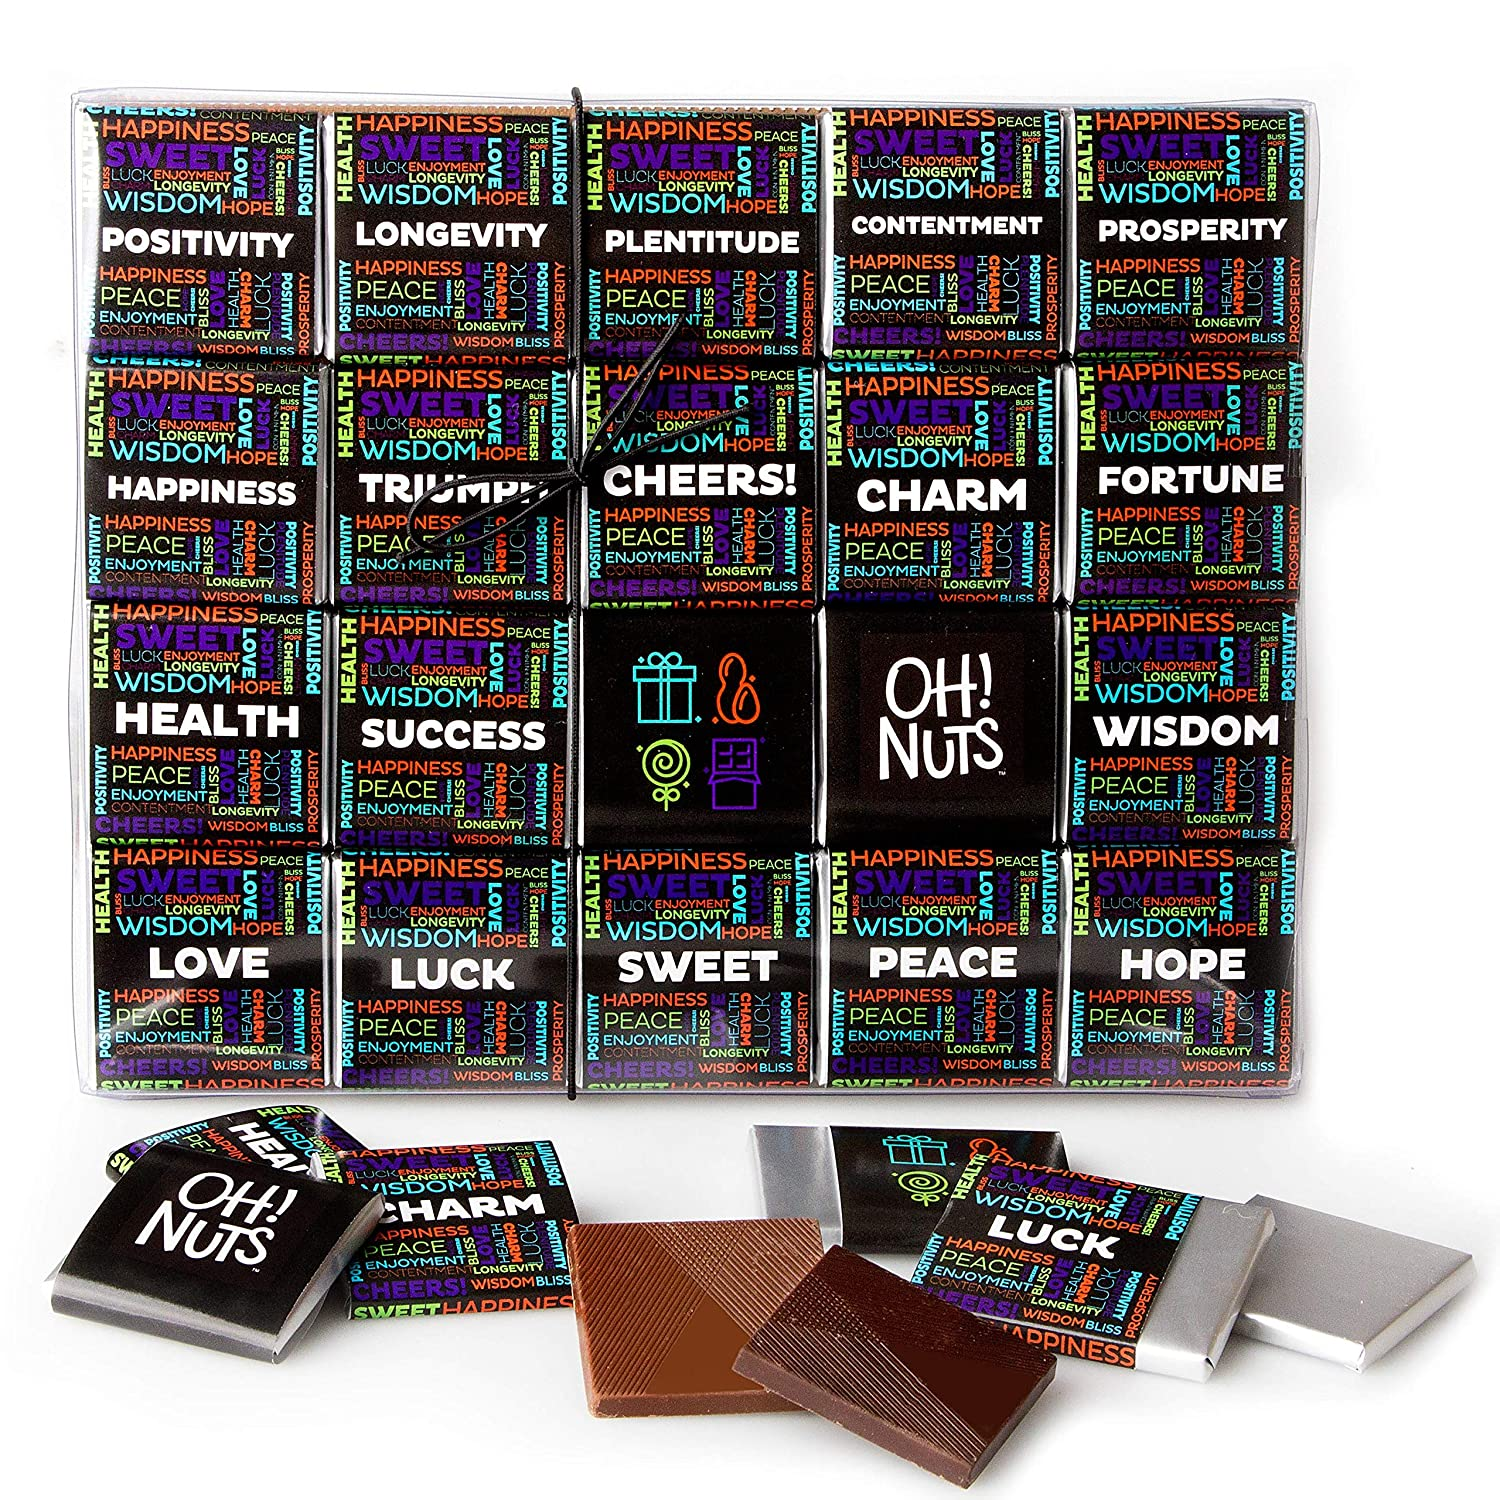 Oh! Nuts Merry Christmas 2020 Chocolate Wishes Gift Set   20 Gourmet Belgium Chocolates Blessings Assorted Flavors Holiday Gifting, Thanksgiving Prime Gifts Idea for Dad, Mom, Men & Women